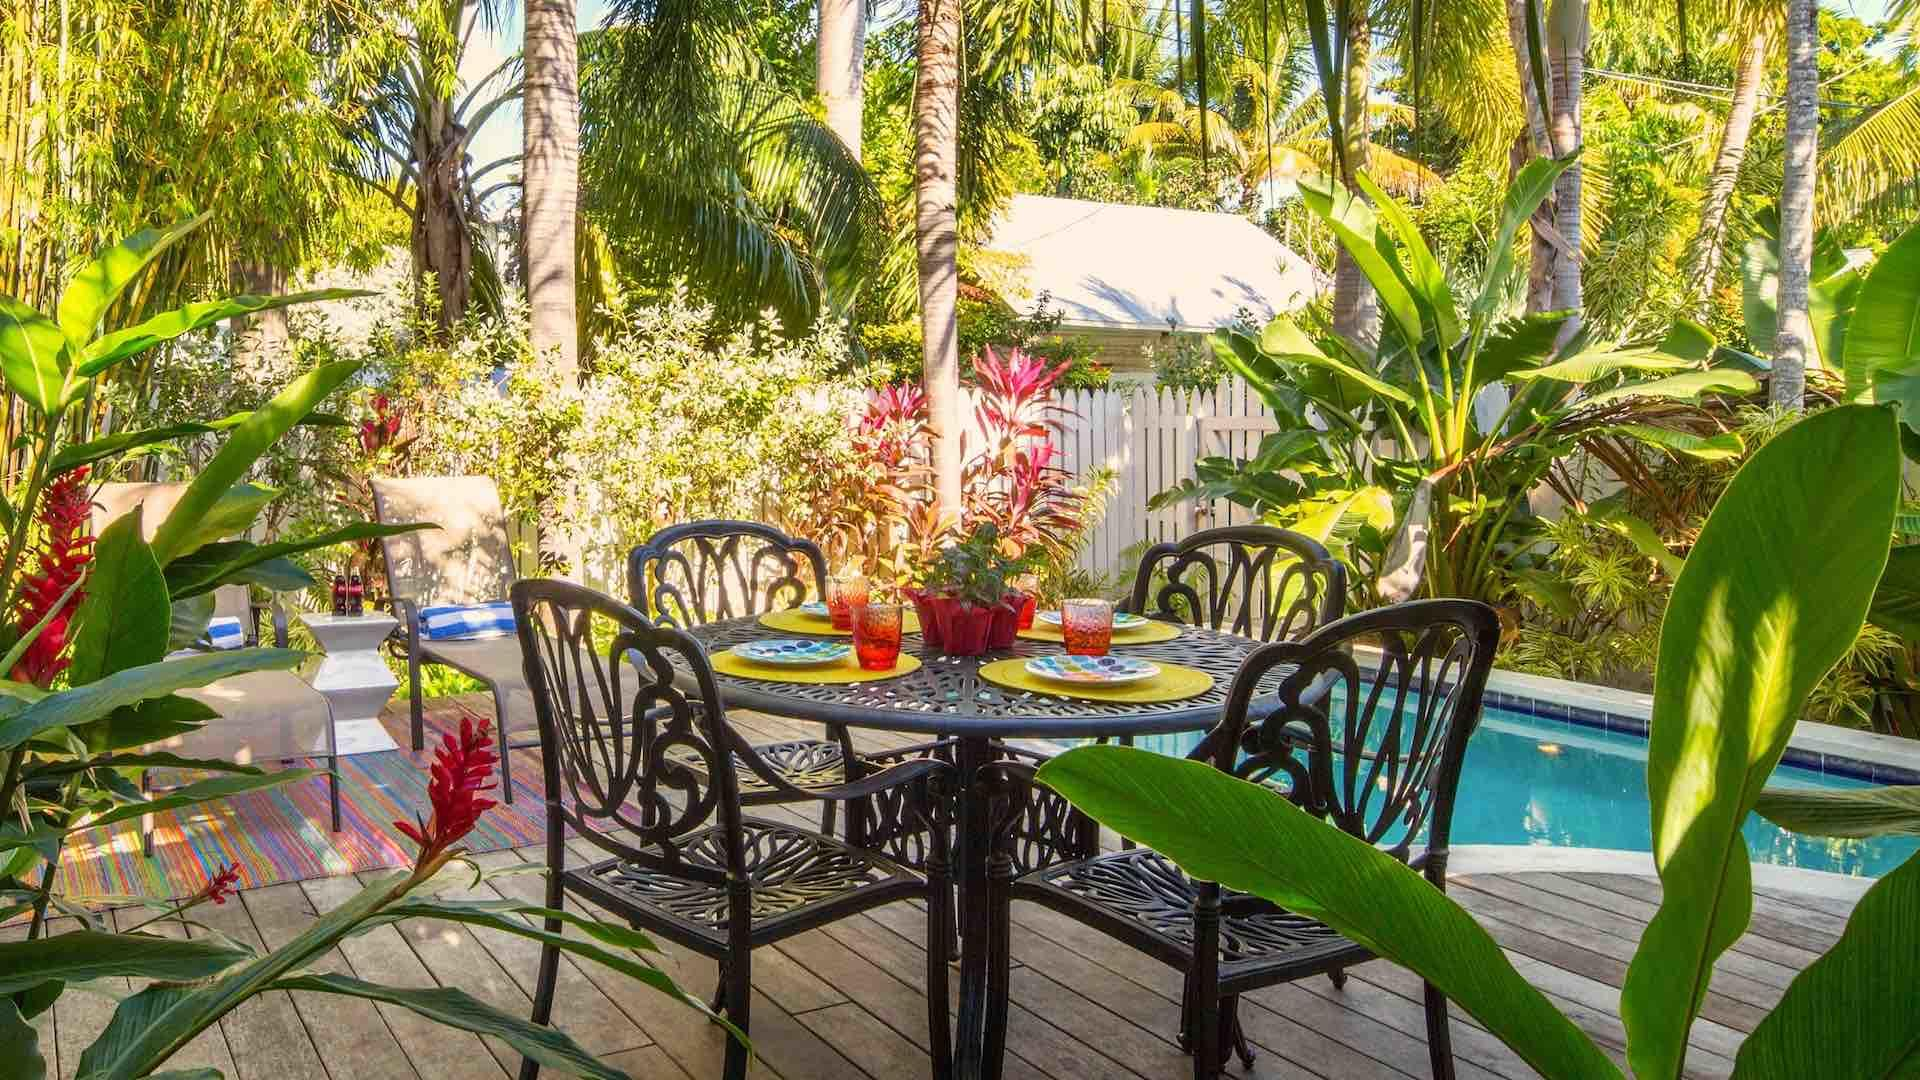 The backyards are each complete with a large propane grill and dining set for an outdoor barbecue by the pool...